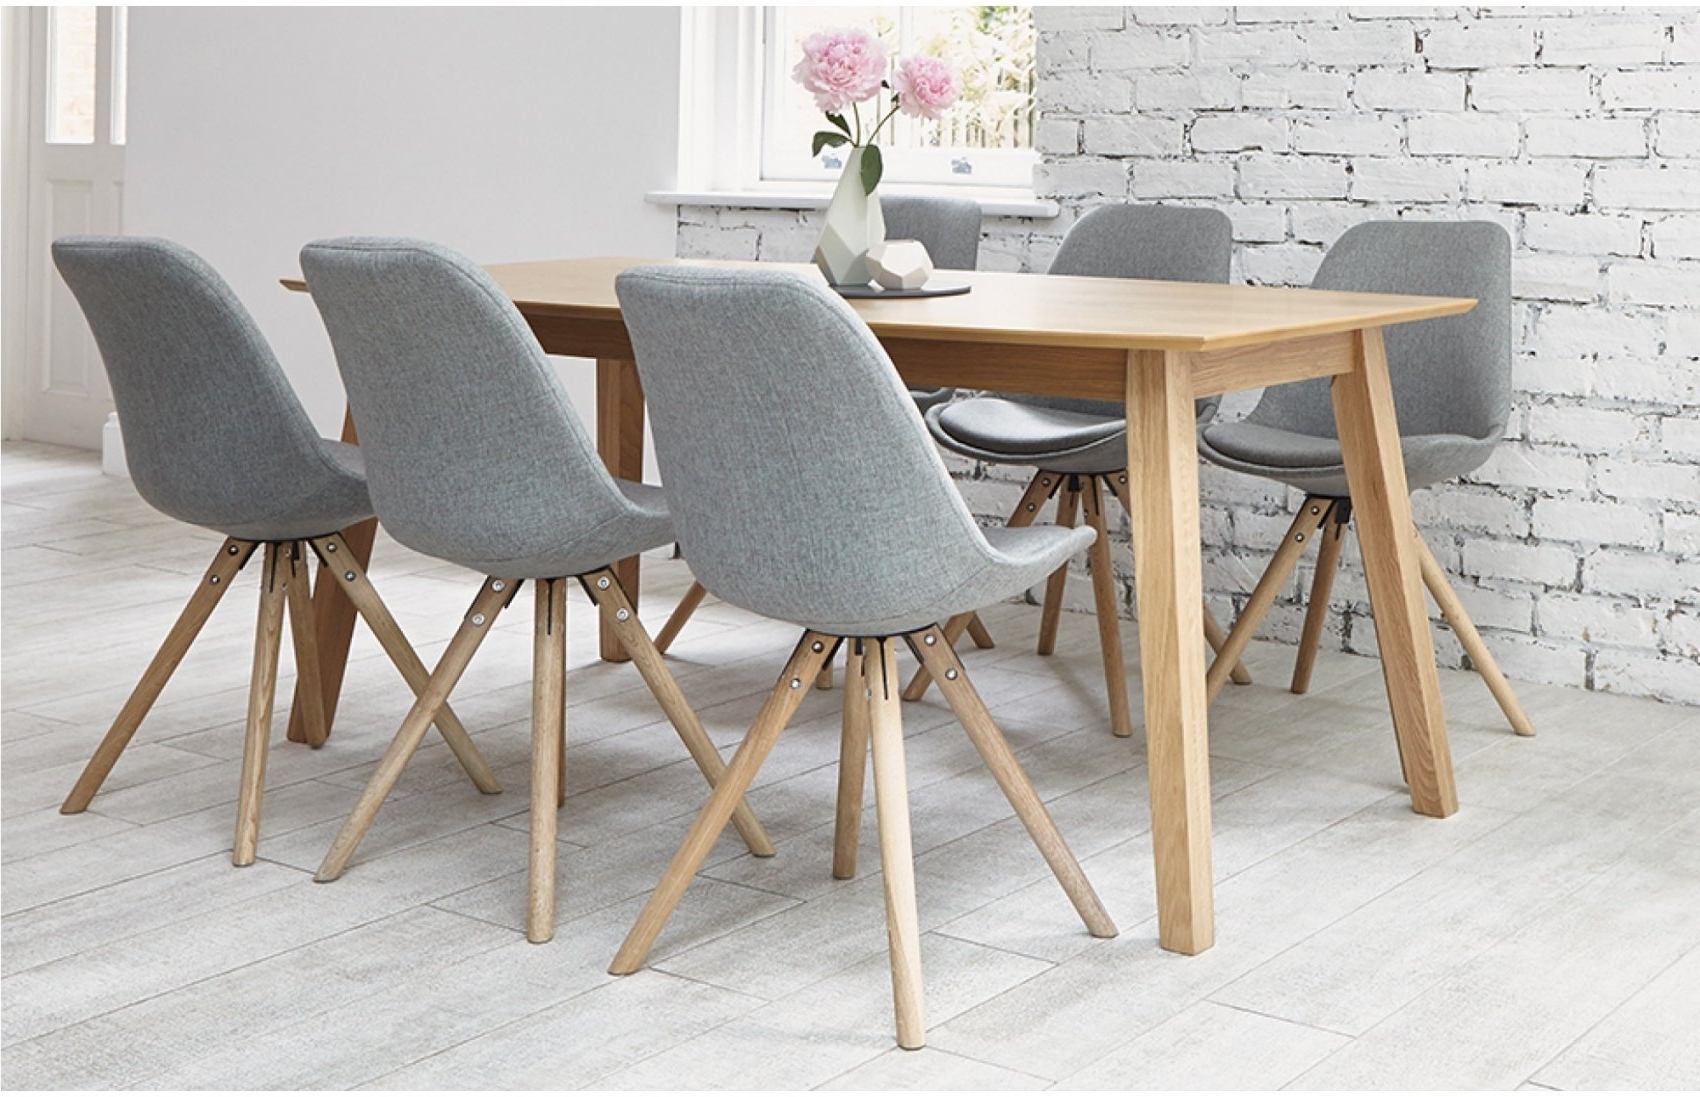 6 Seater Dining Table Sets – Castrophotos With Regard To Widely Used 6 Seat Dining Table Sets (View 6 of 25)